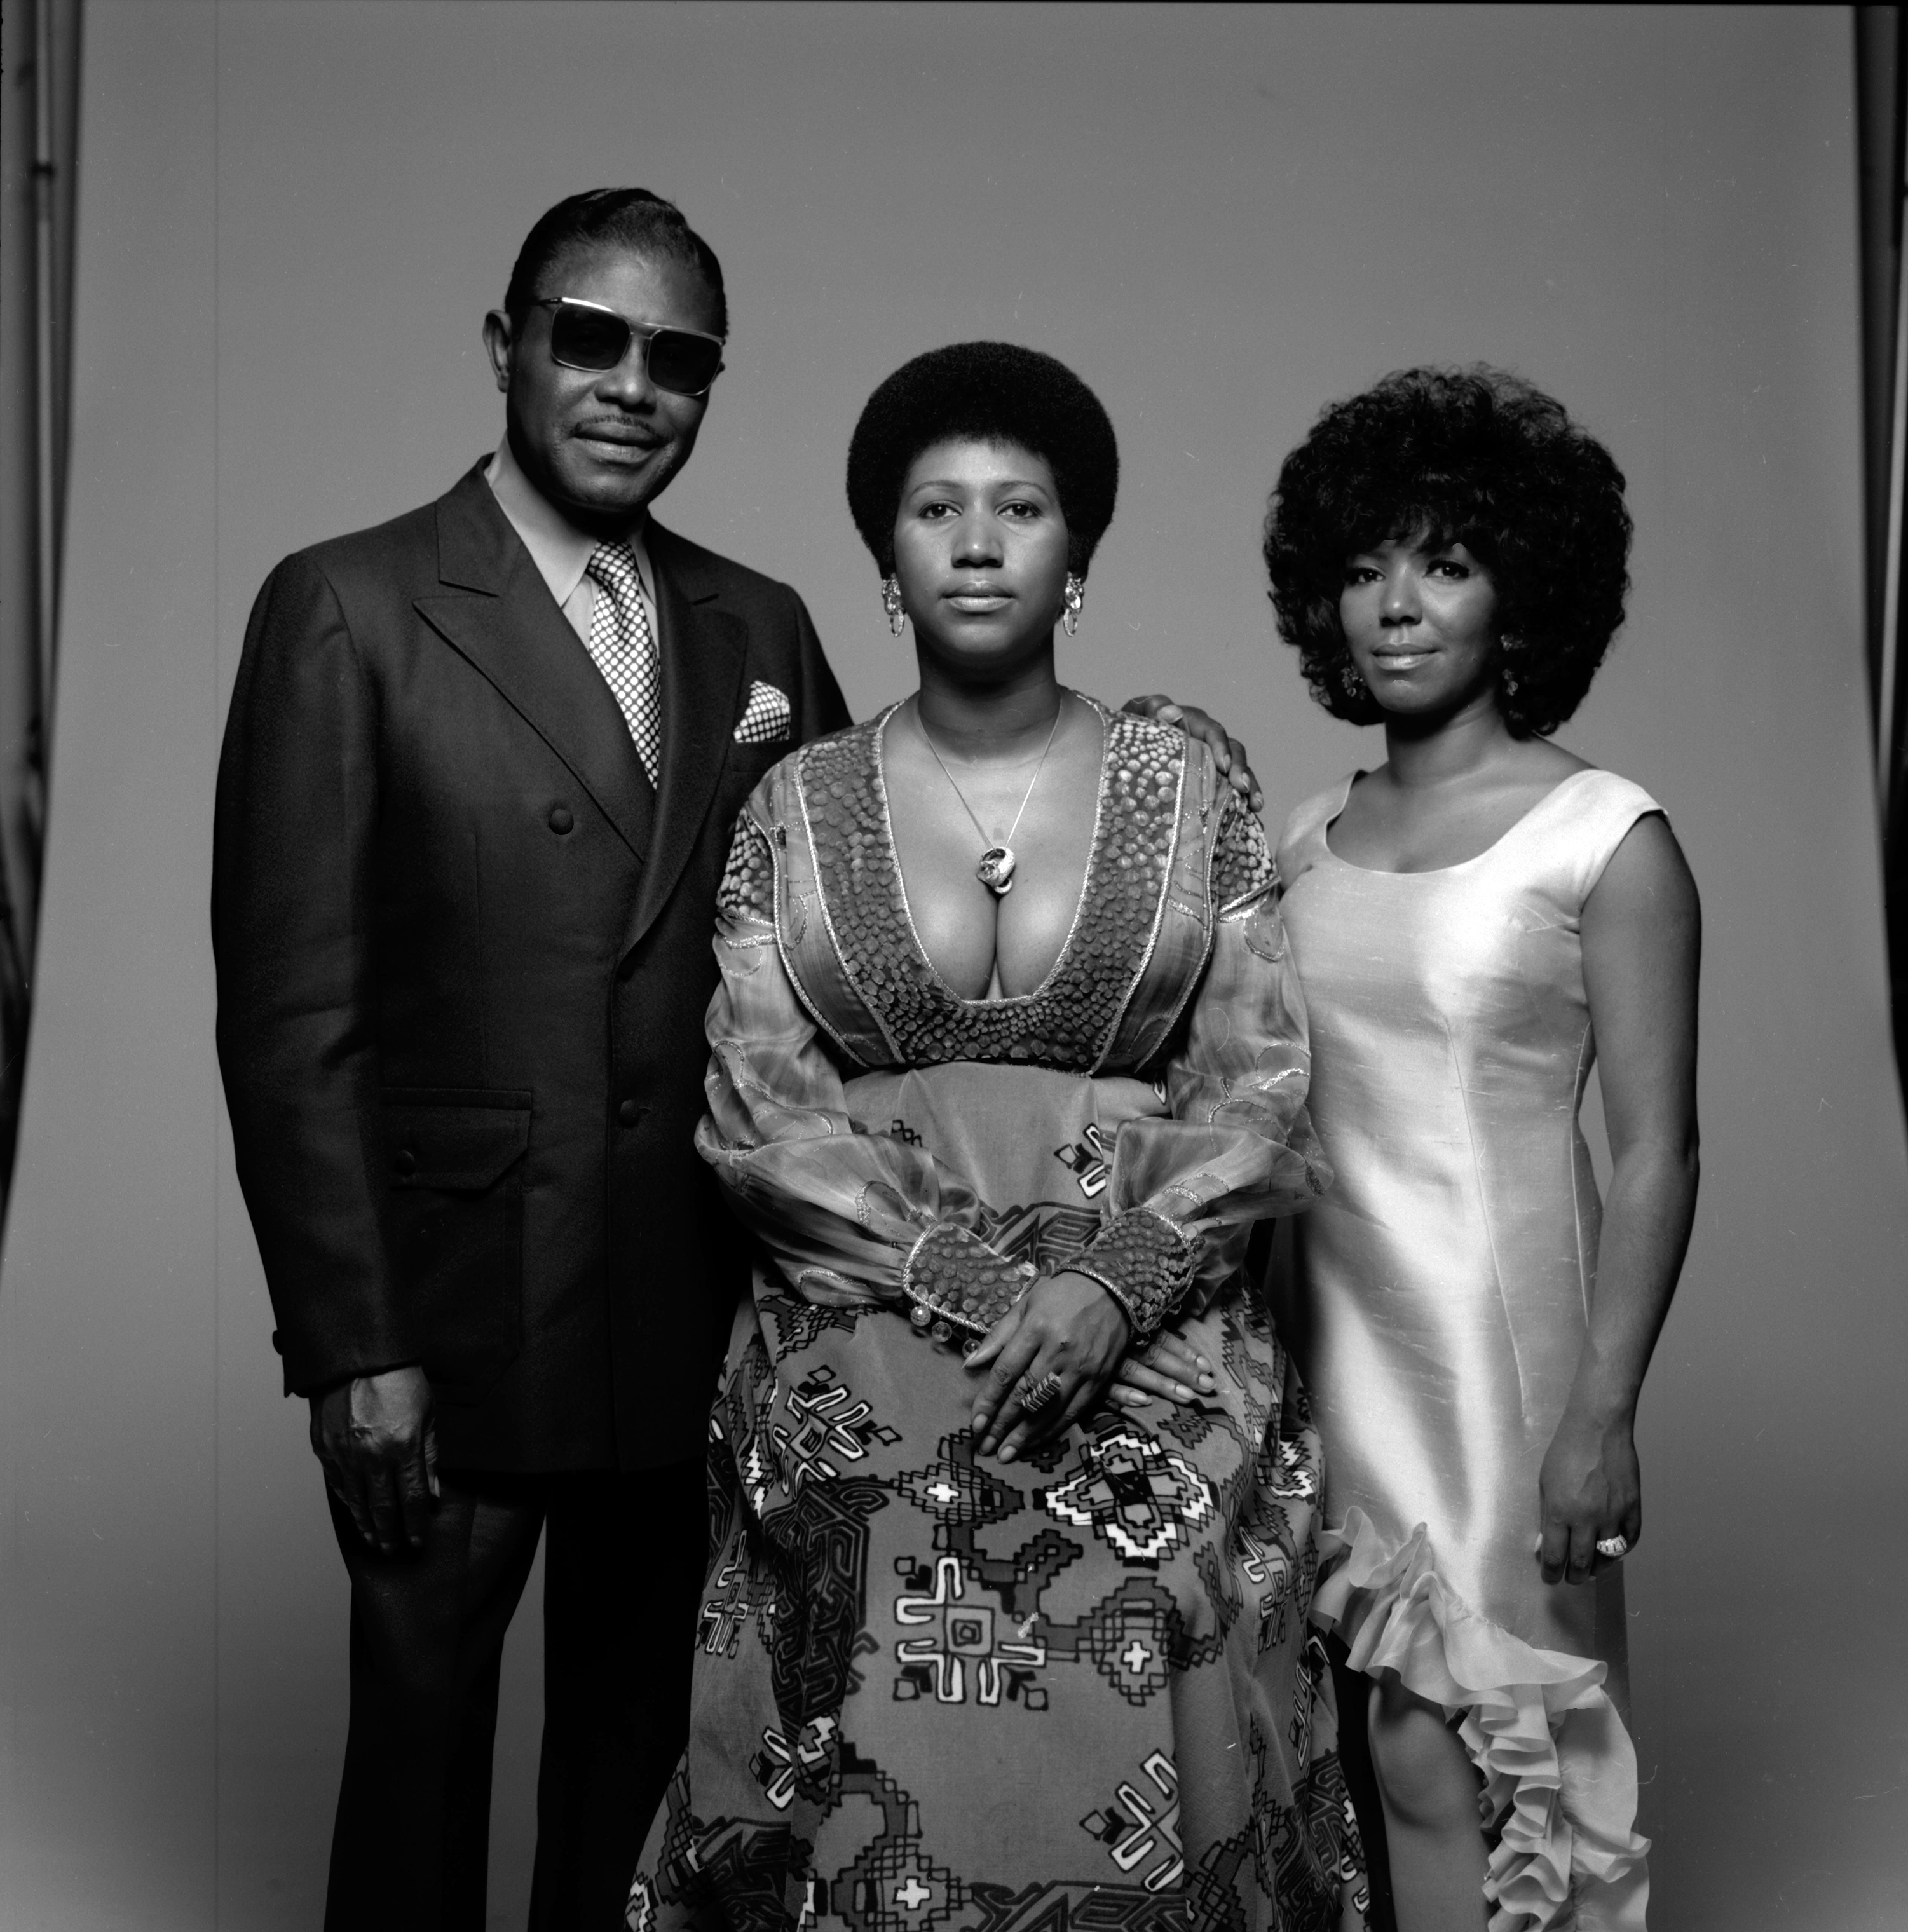 Aretha Franklin, center, her father, Reverend C. L. Franklin, and her sister, fellow singer Carolyn in New York, 1971.